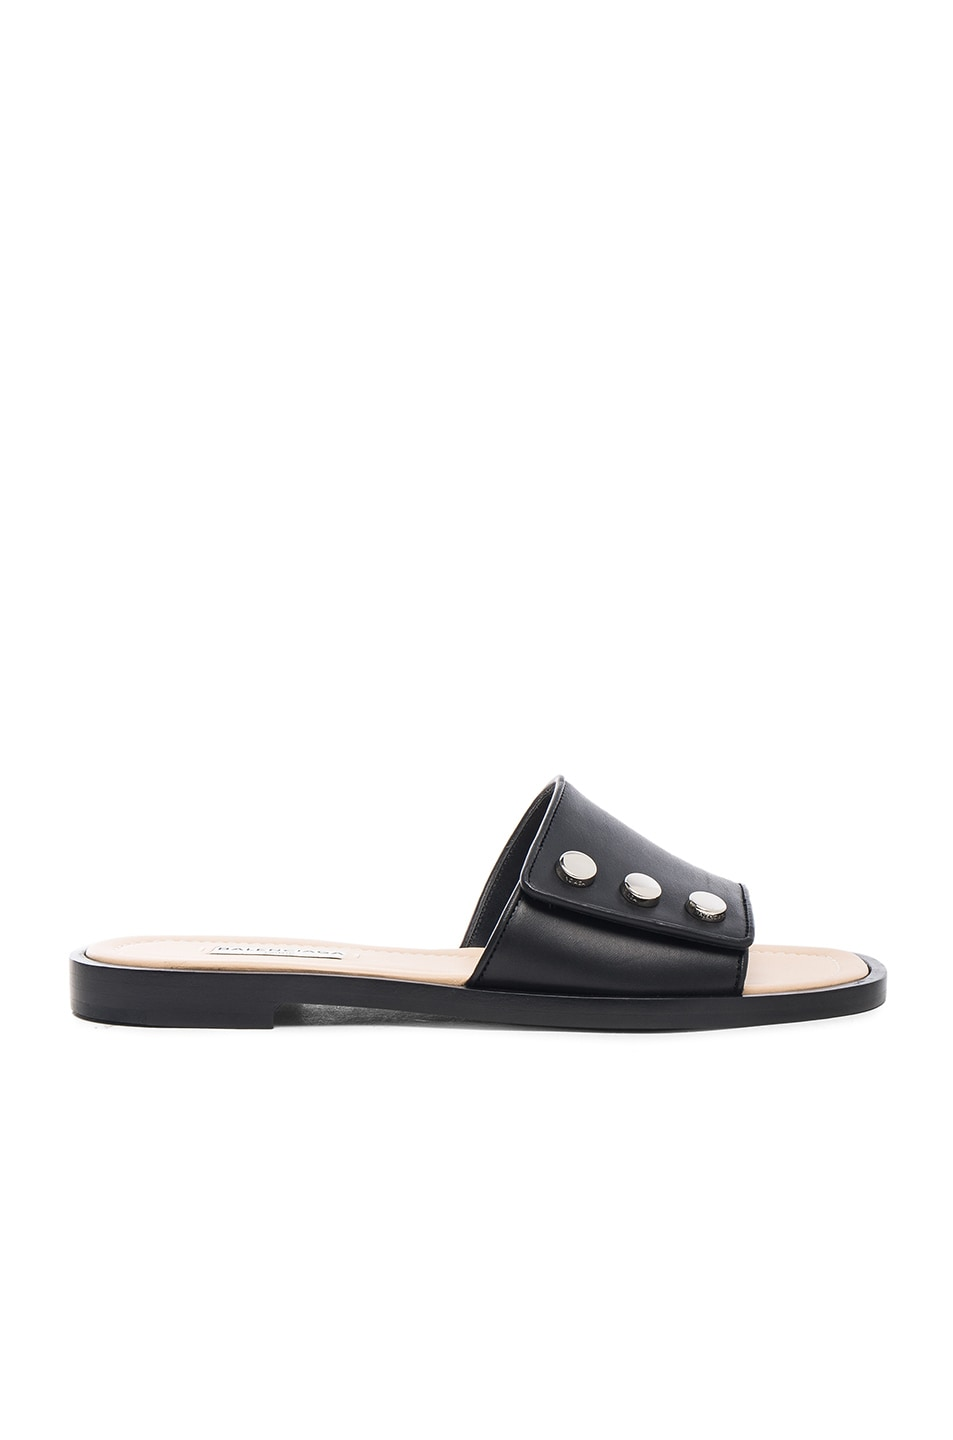 f5fd6a73ab70 Image 1 of Balenciaga Studded Slide Sandals in Black